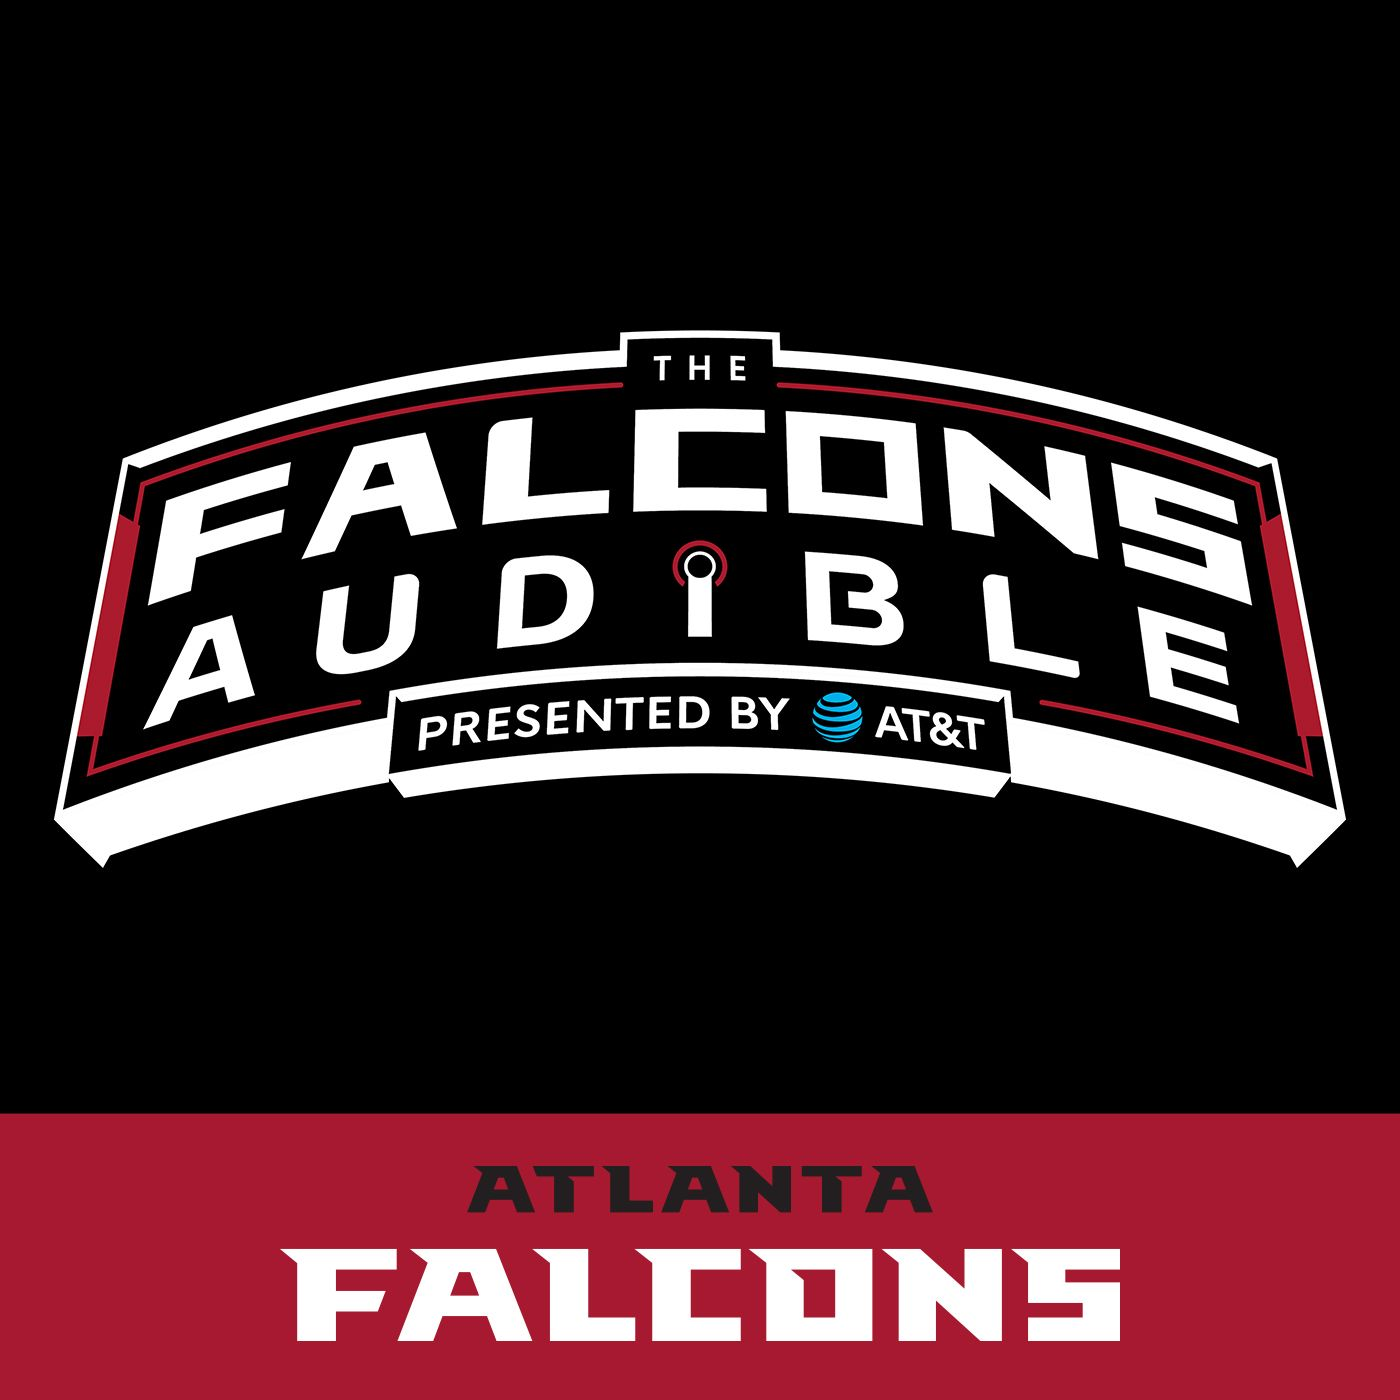 The Falcons Audible presented by AT&T